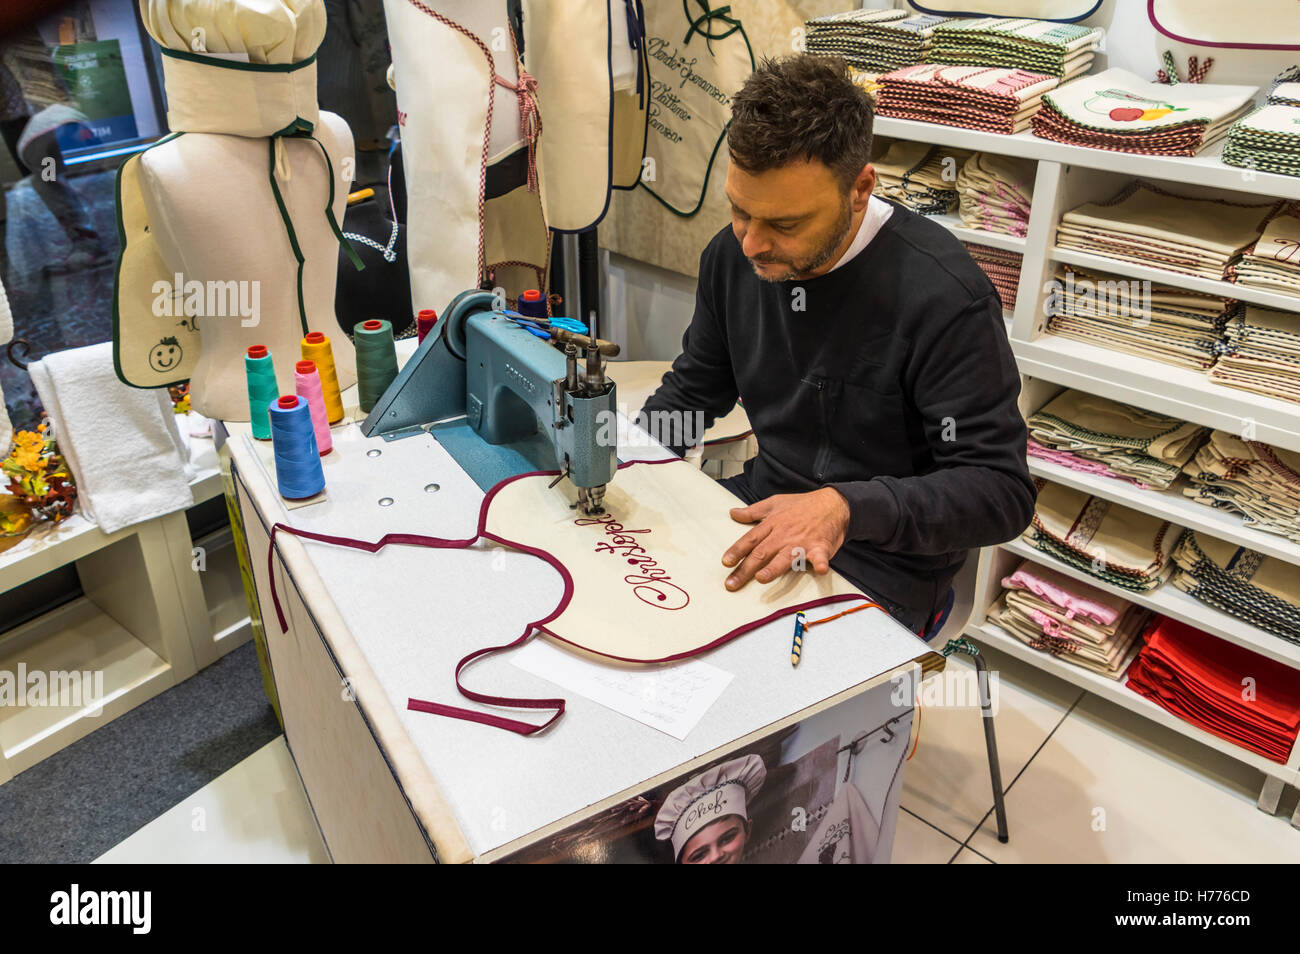 Man using a stitching machine to stitch the name 'Christoph' in script typeface on a baby bib. - Stock Image